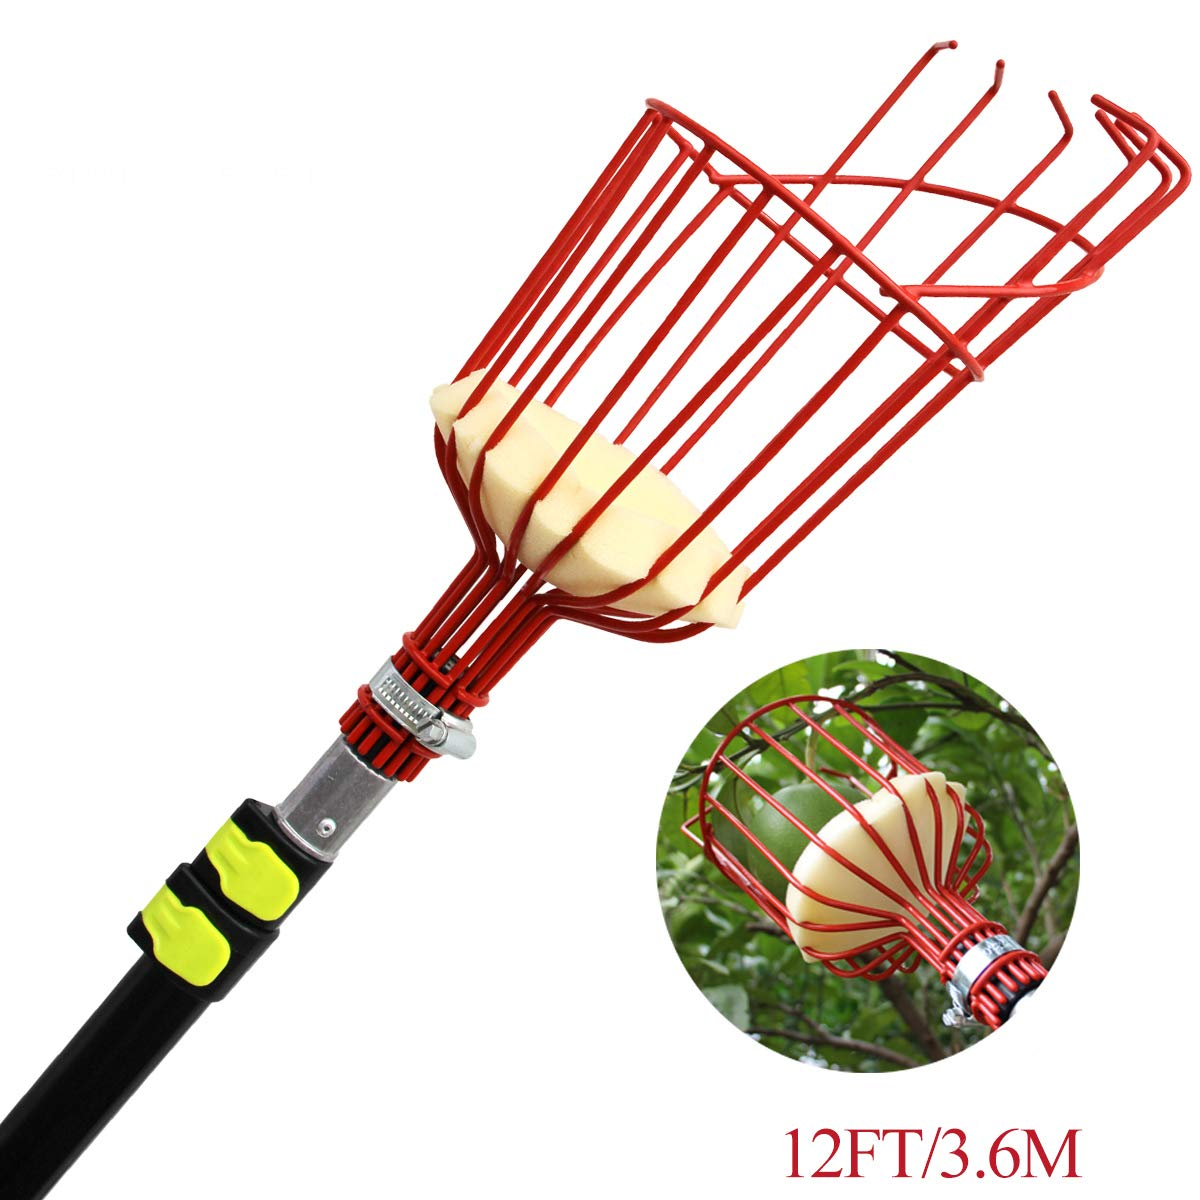 Mesa Fruit Tree Picker with telescoping Pole and Twist-on Basket, Red Head Lightweight Aluminum Extension Picking Tool 13ft for Getting Apples Oranges and All Fruits